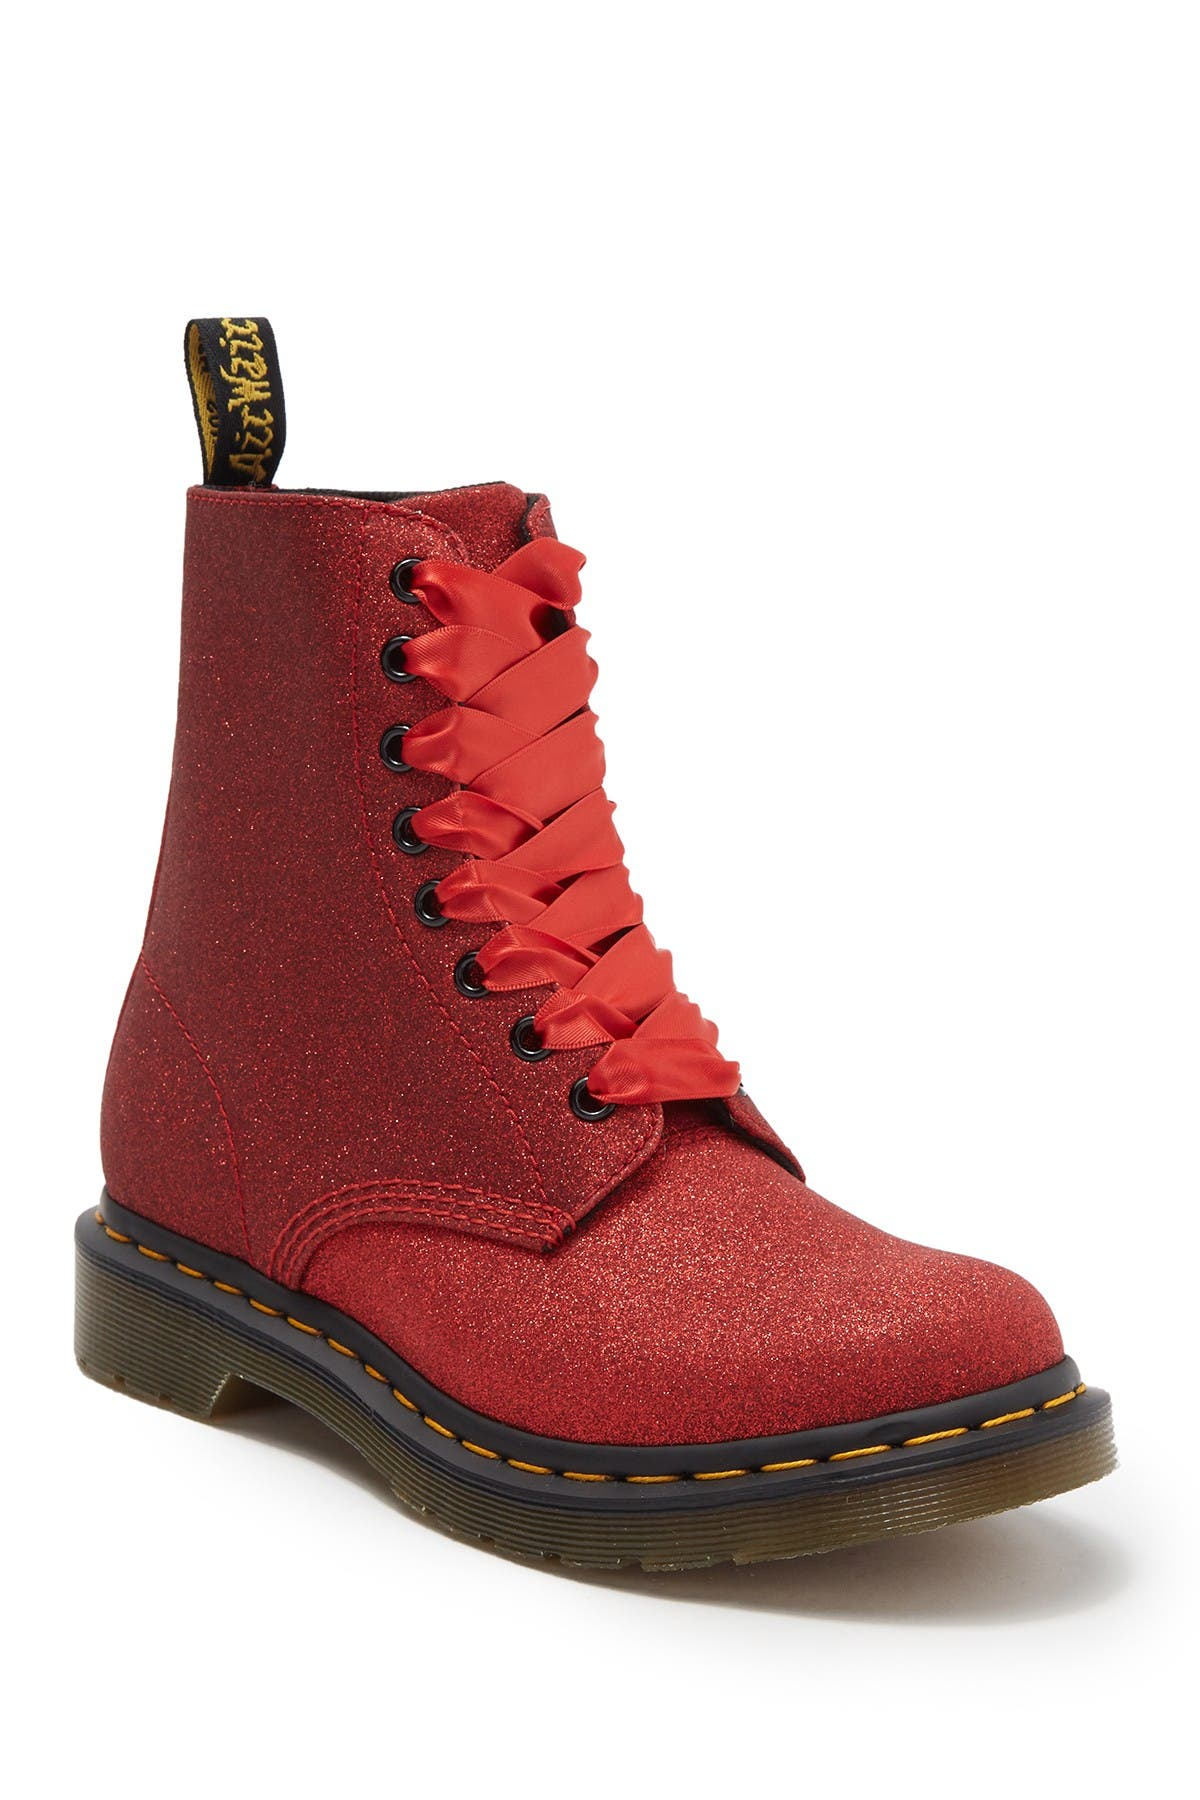 Image of Dr. Martens 1460 Pascal Glitter Boot